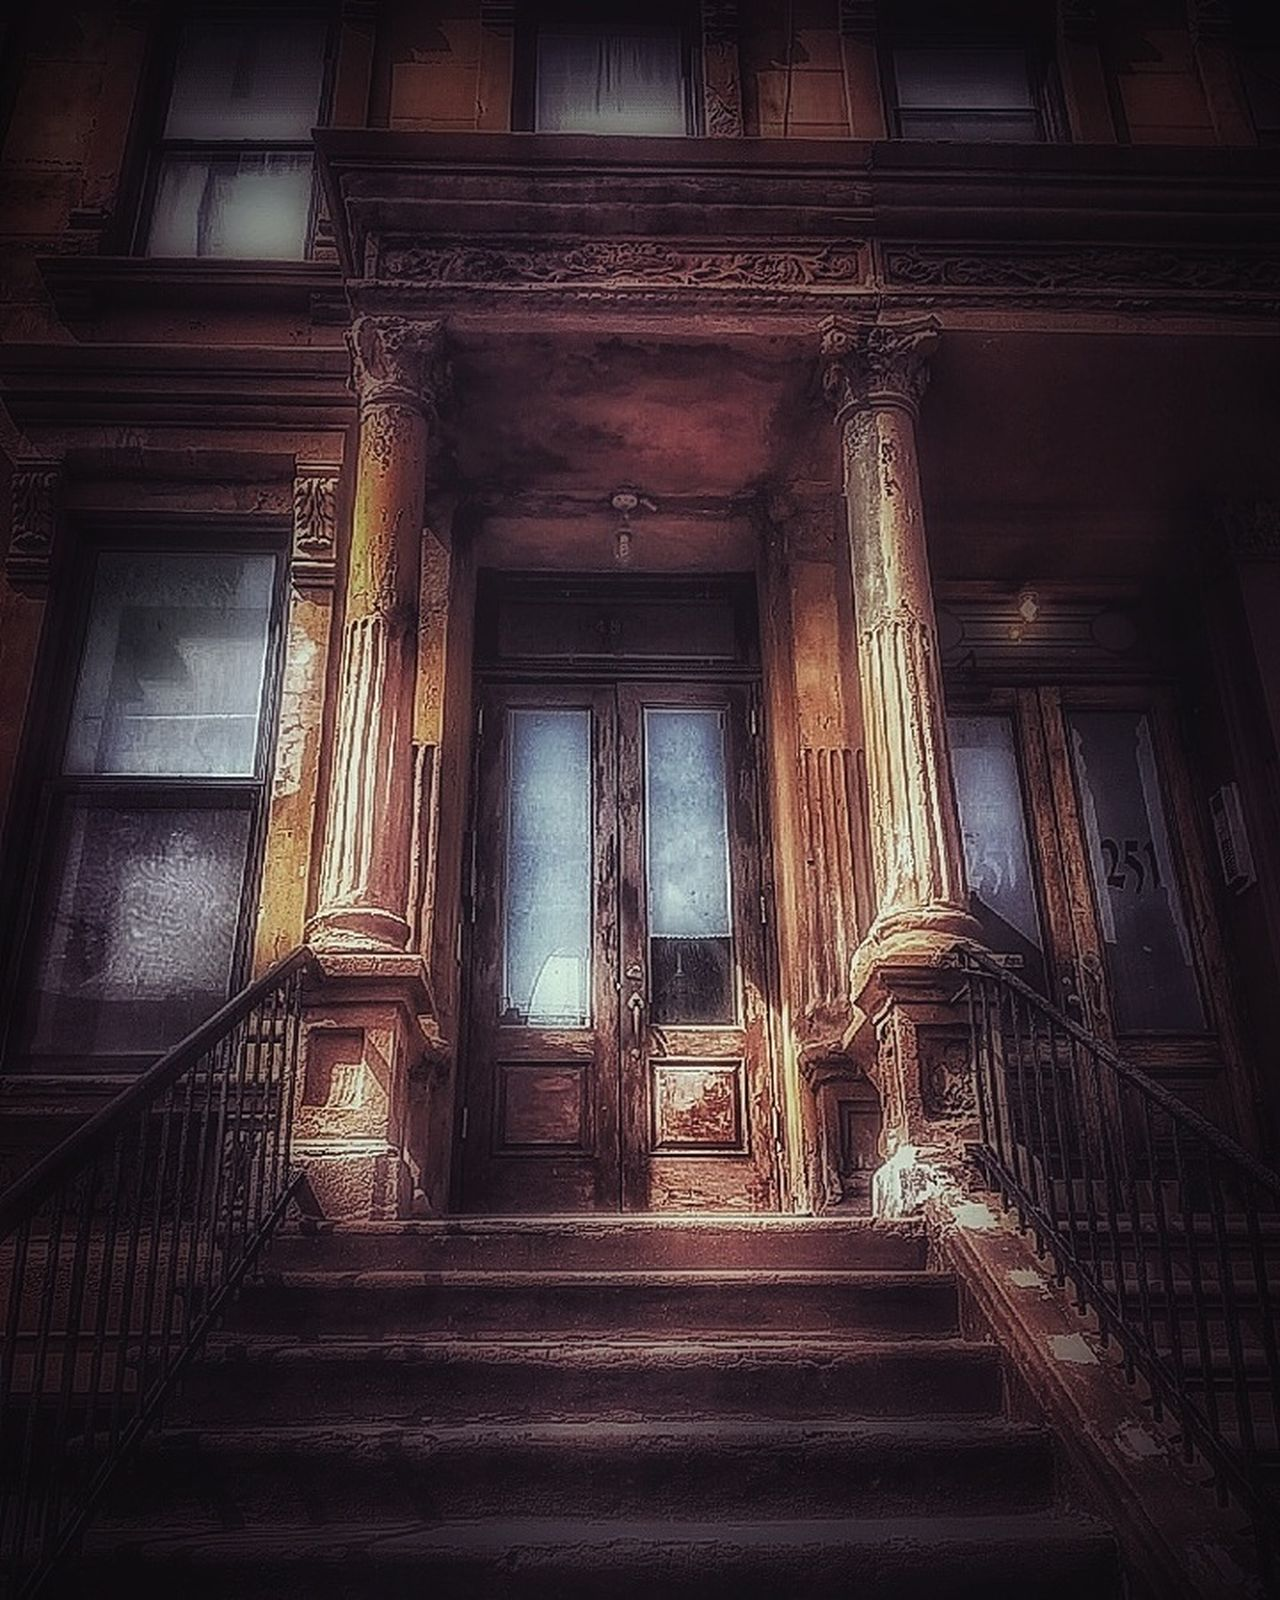 Built Structure Staircase Urban Lifestyle Abandoned Buildings Damaged Decayed Beauty Residential Building EyeEm Gallery Deterioration AMPt - My Perspective AMPt - Street Building Exterior NYC Street Brooklyn Nyc Brick Building New York NYC Photography Nycprimeshot New York Street Photography Nycstreetphotography Doorsonly Weathered Urbexphotography Doors